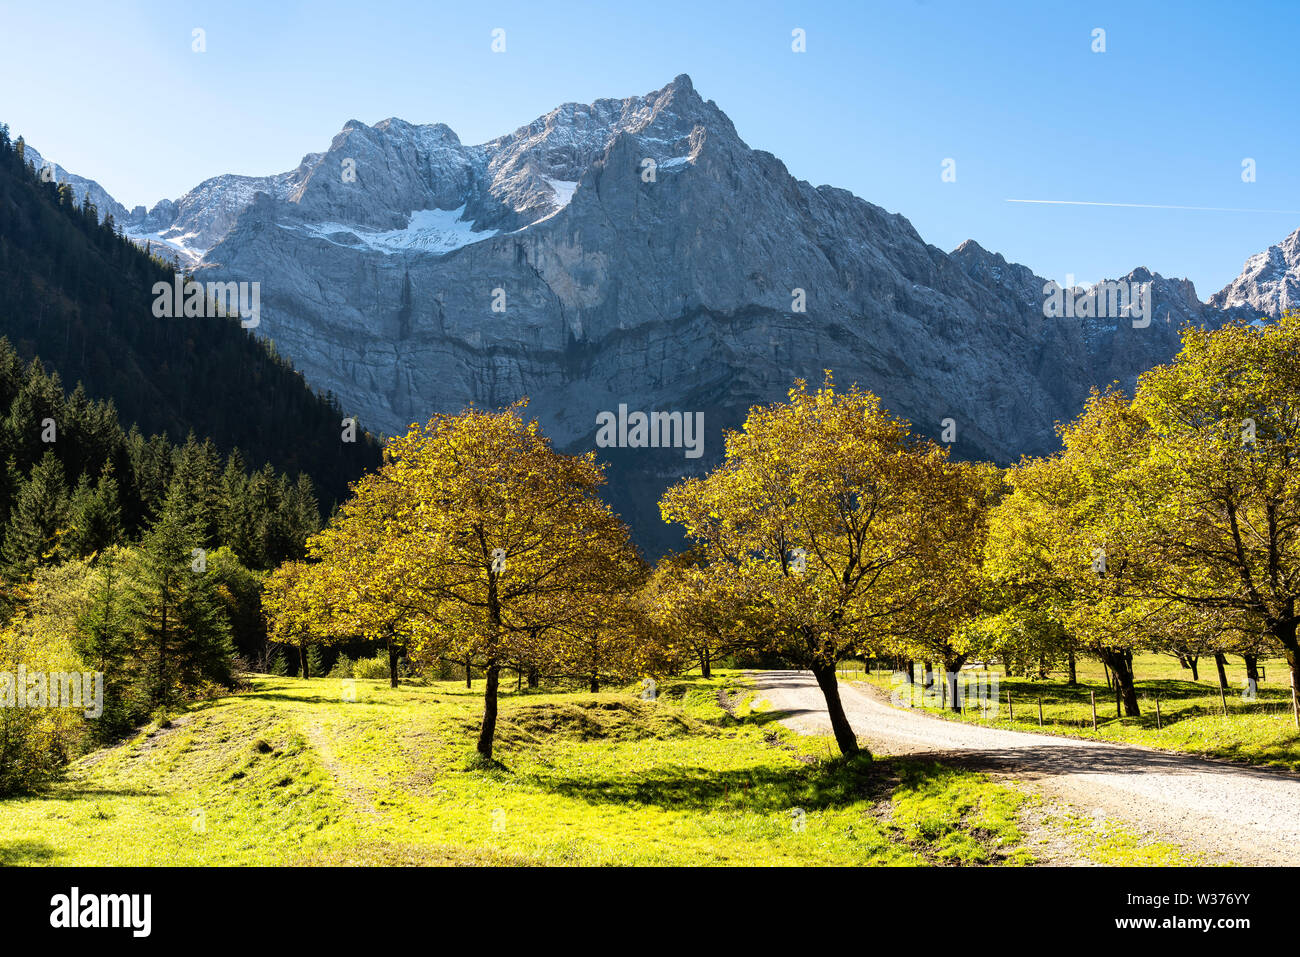 Autumn view of the maple trees at Ahornboden, Karwendel mountains, Tyrol, Austria - Stock Image